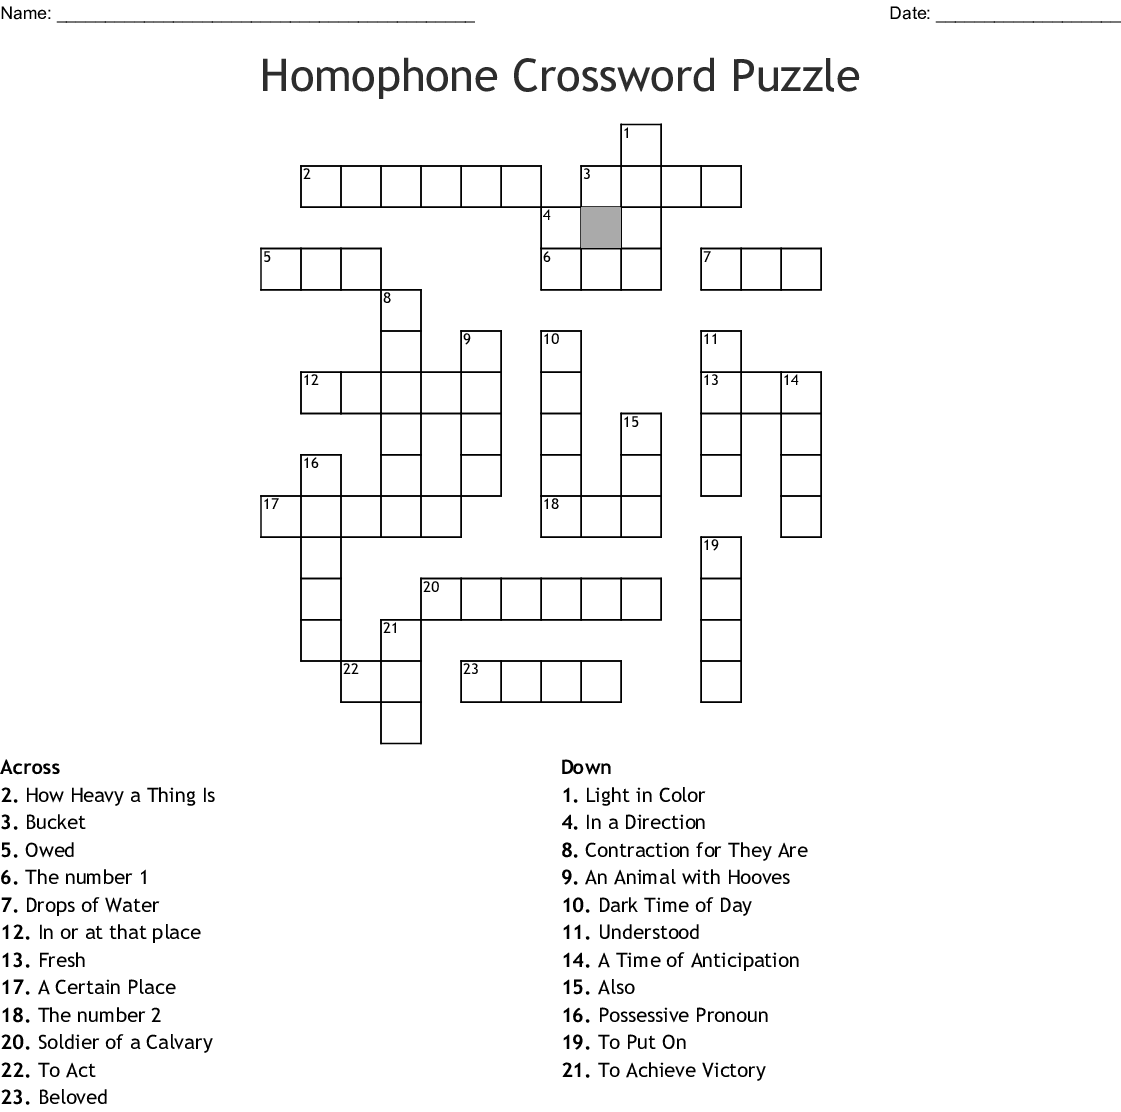 Homophones Word Search - WordMint